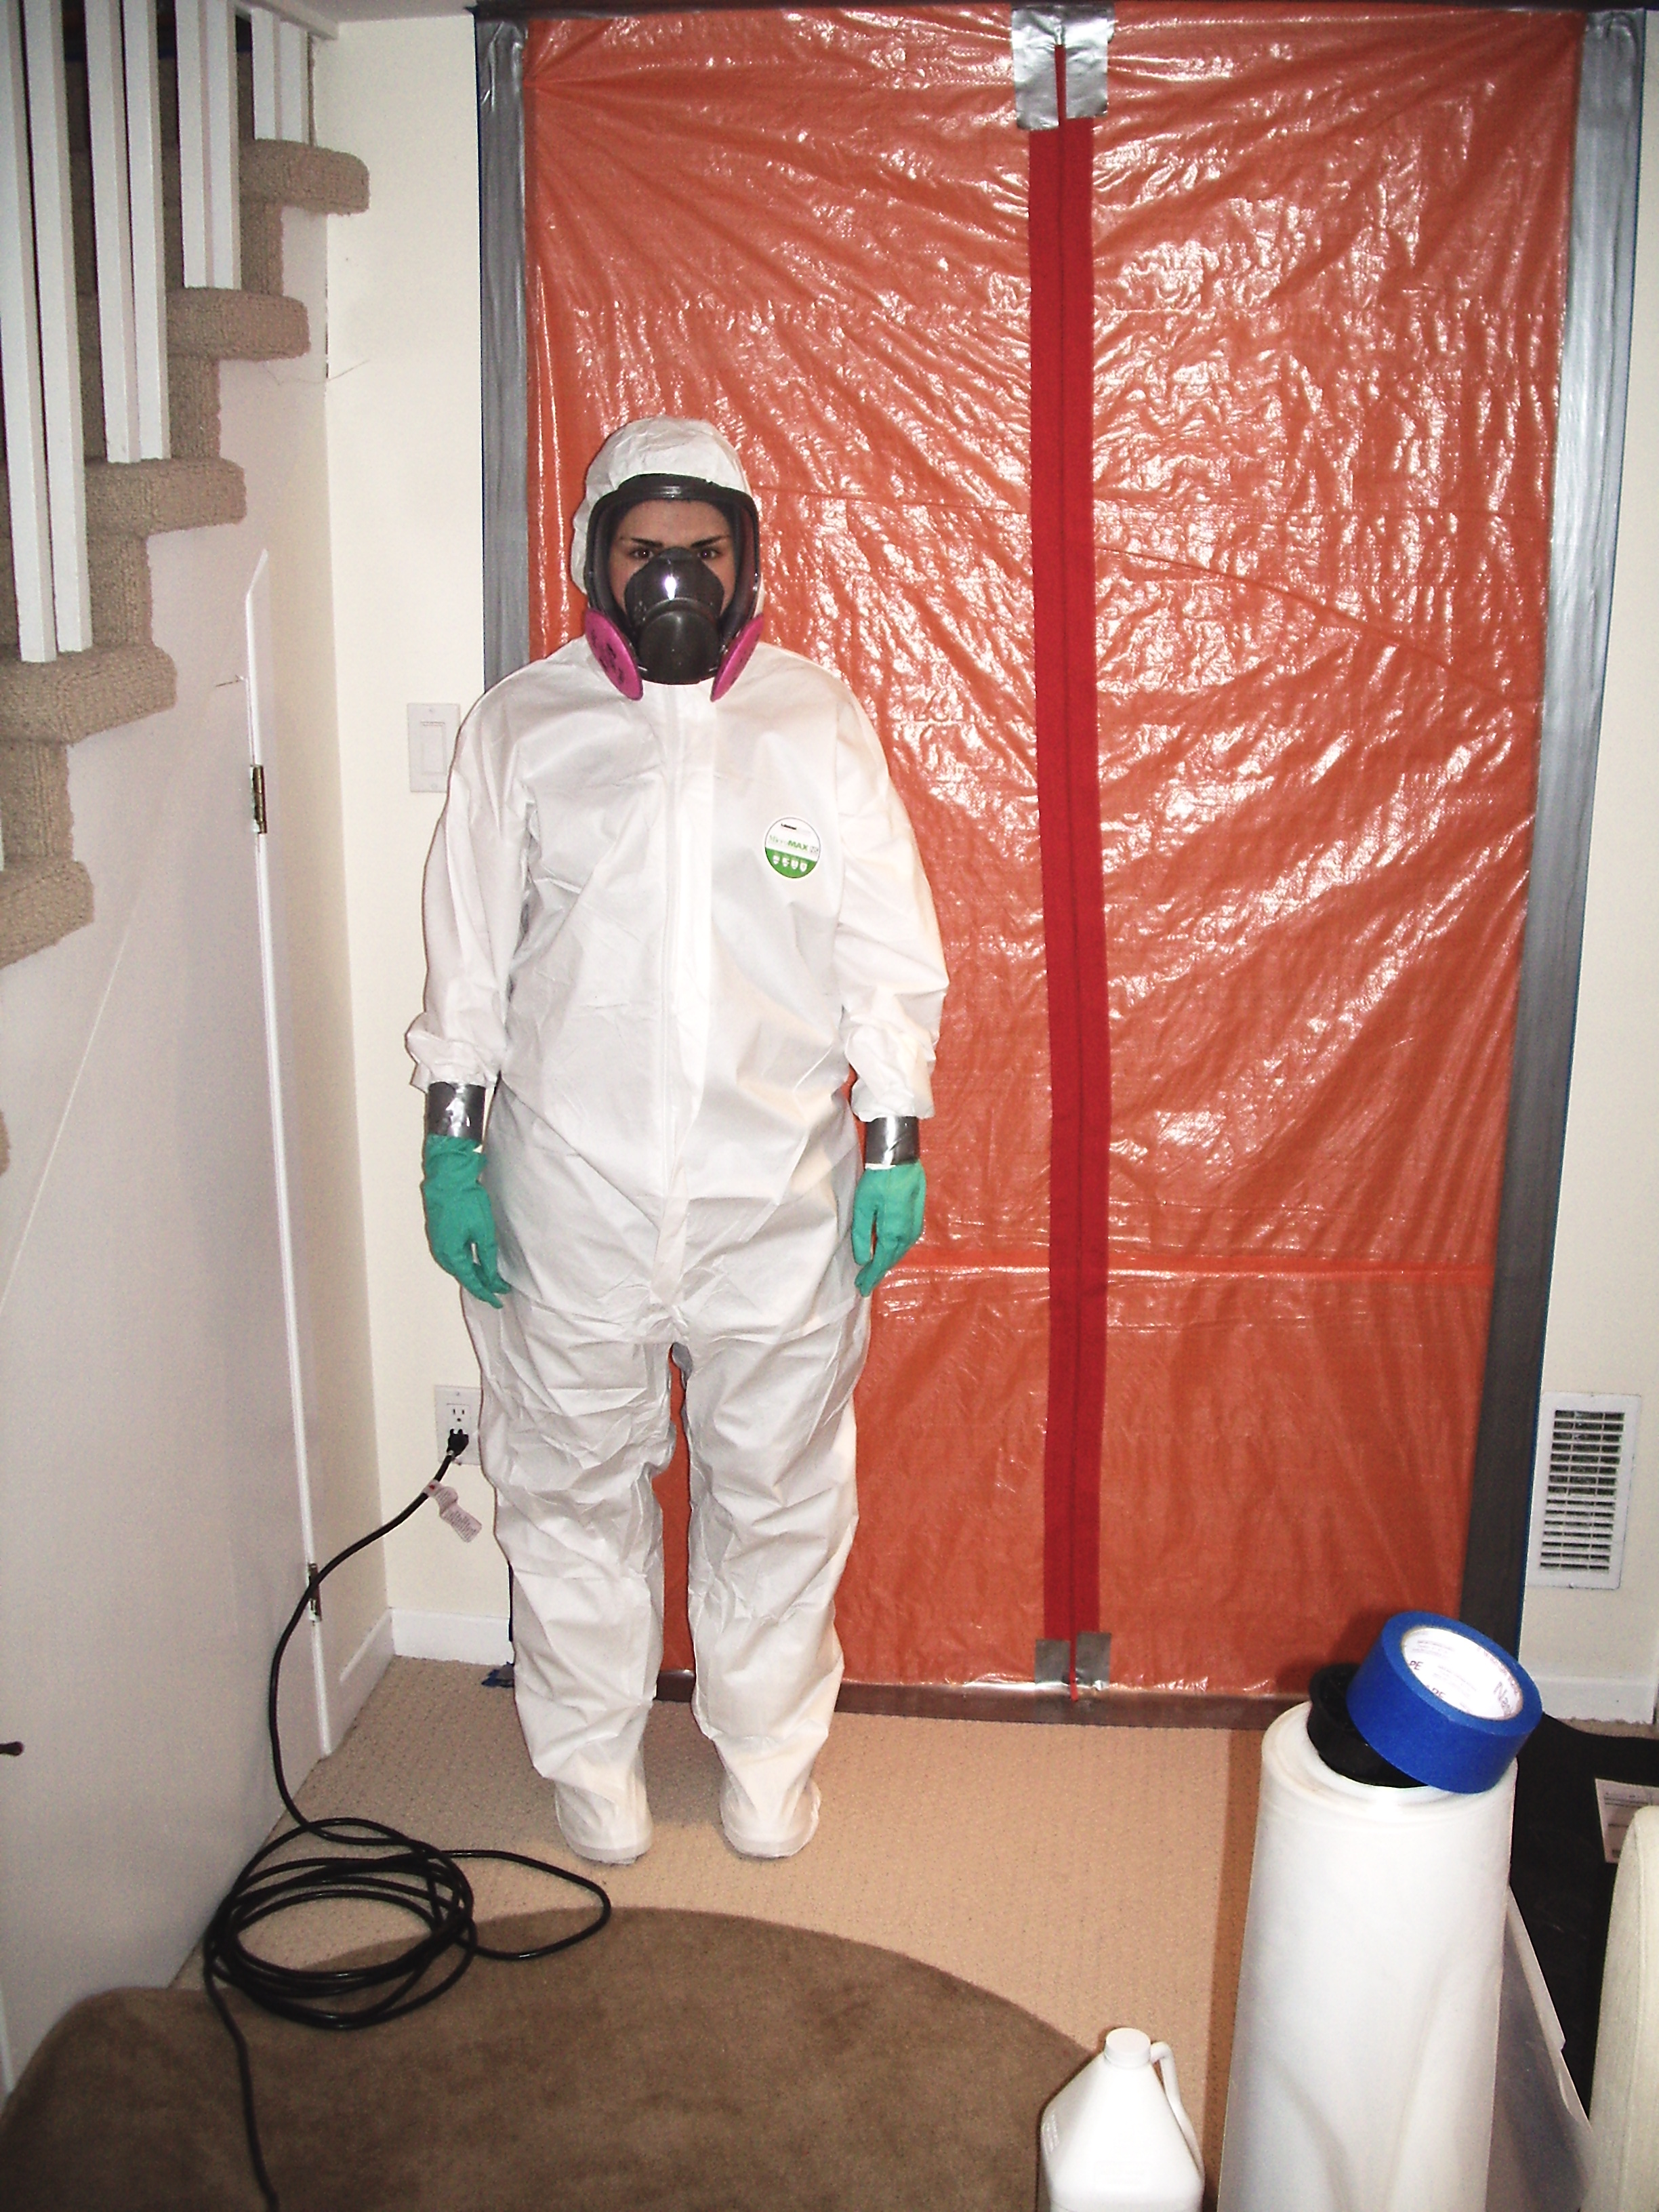 mold removal, mold inspector, mold professional, mold guy, mold, black mold, mildew